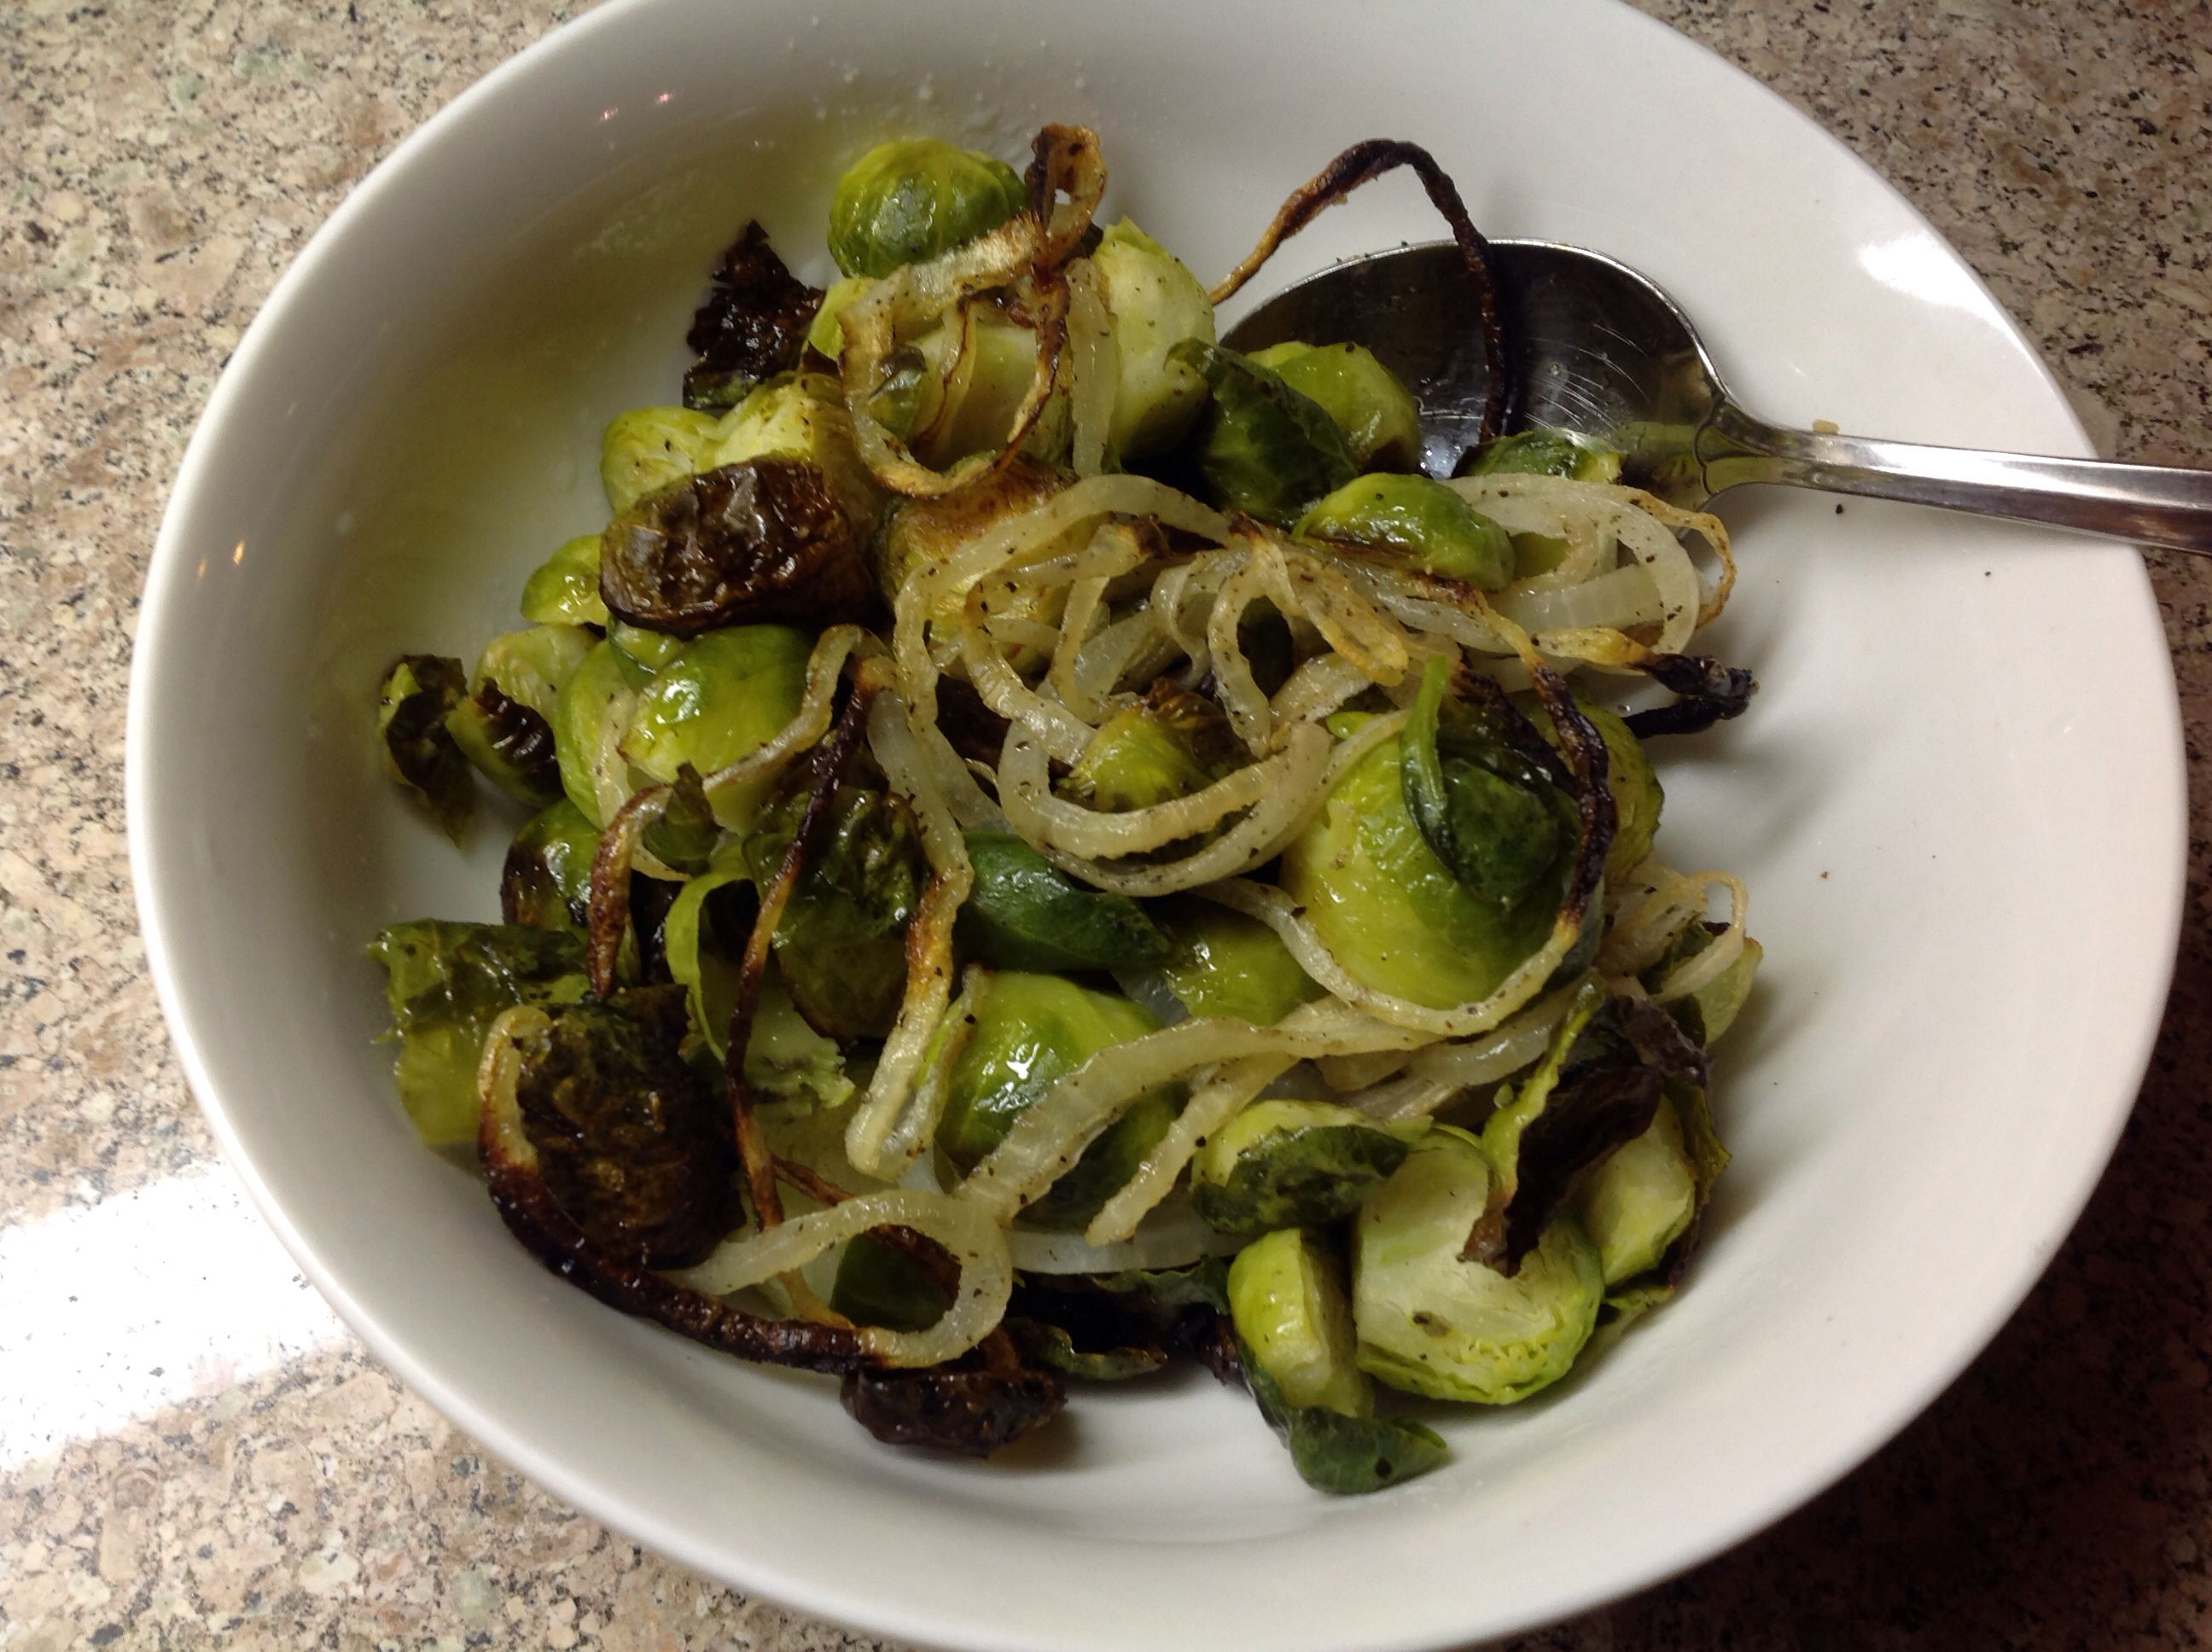 Simple Paleo dinner tonight: Brussels sprouts and onion, tossed with olive oil, little salt and pepper, baked at 450 for 25 min.